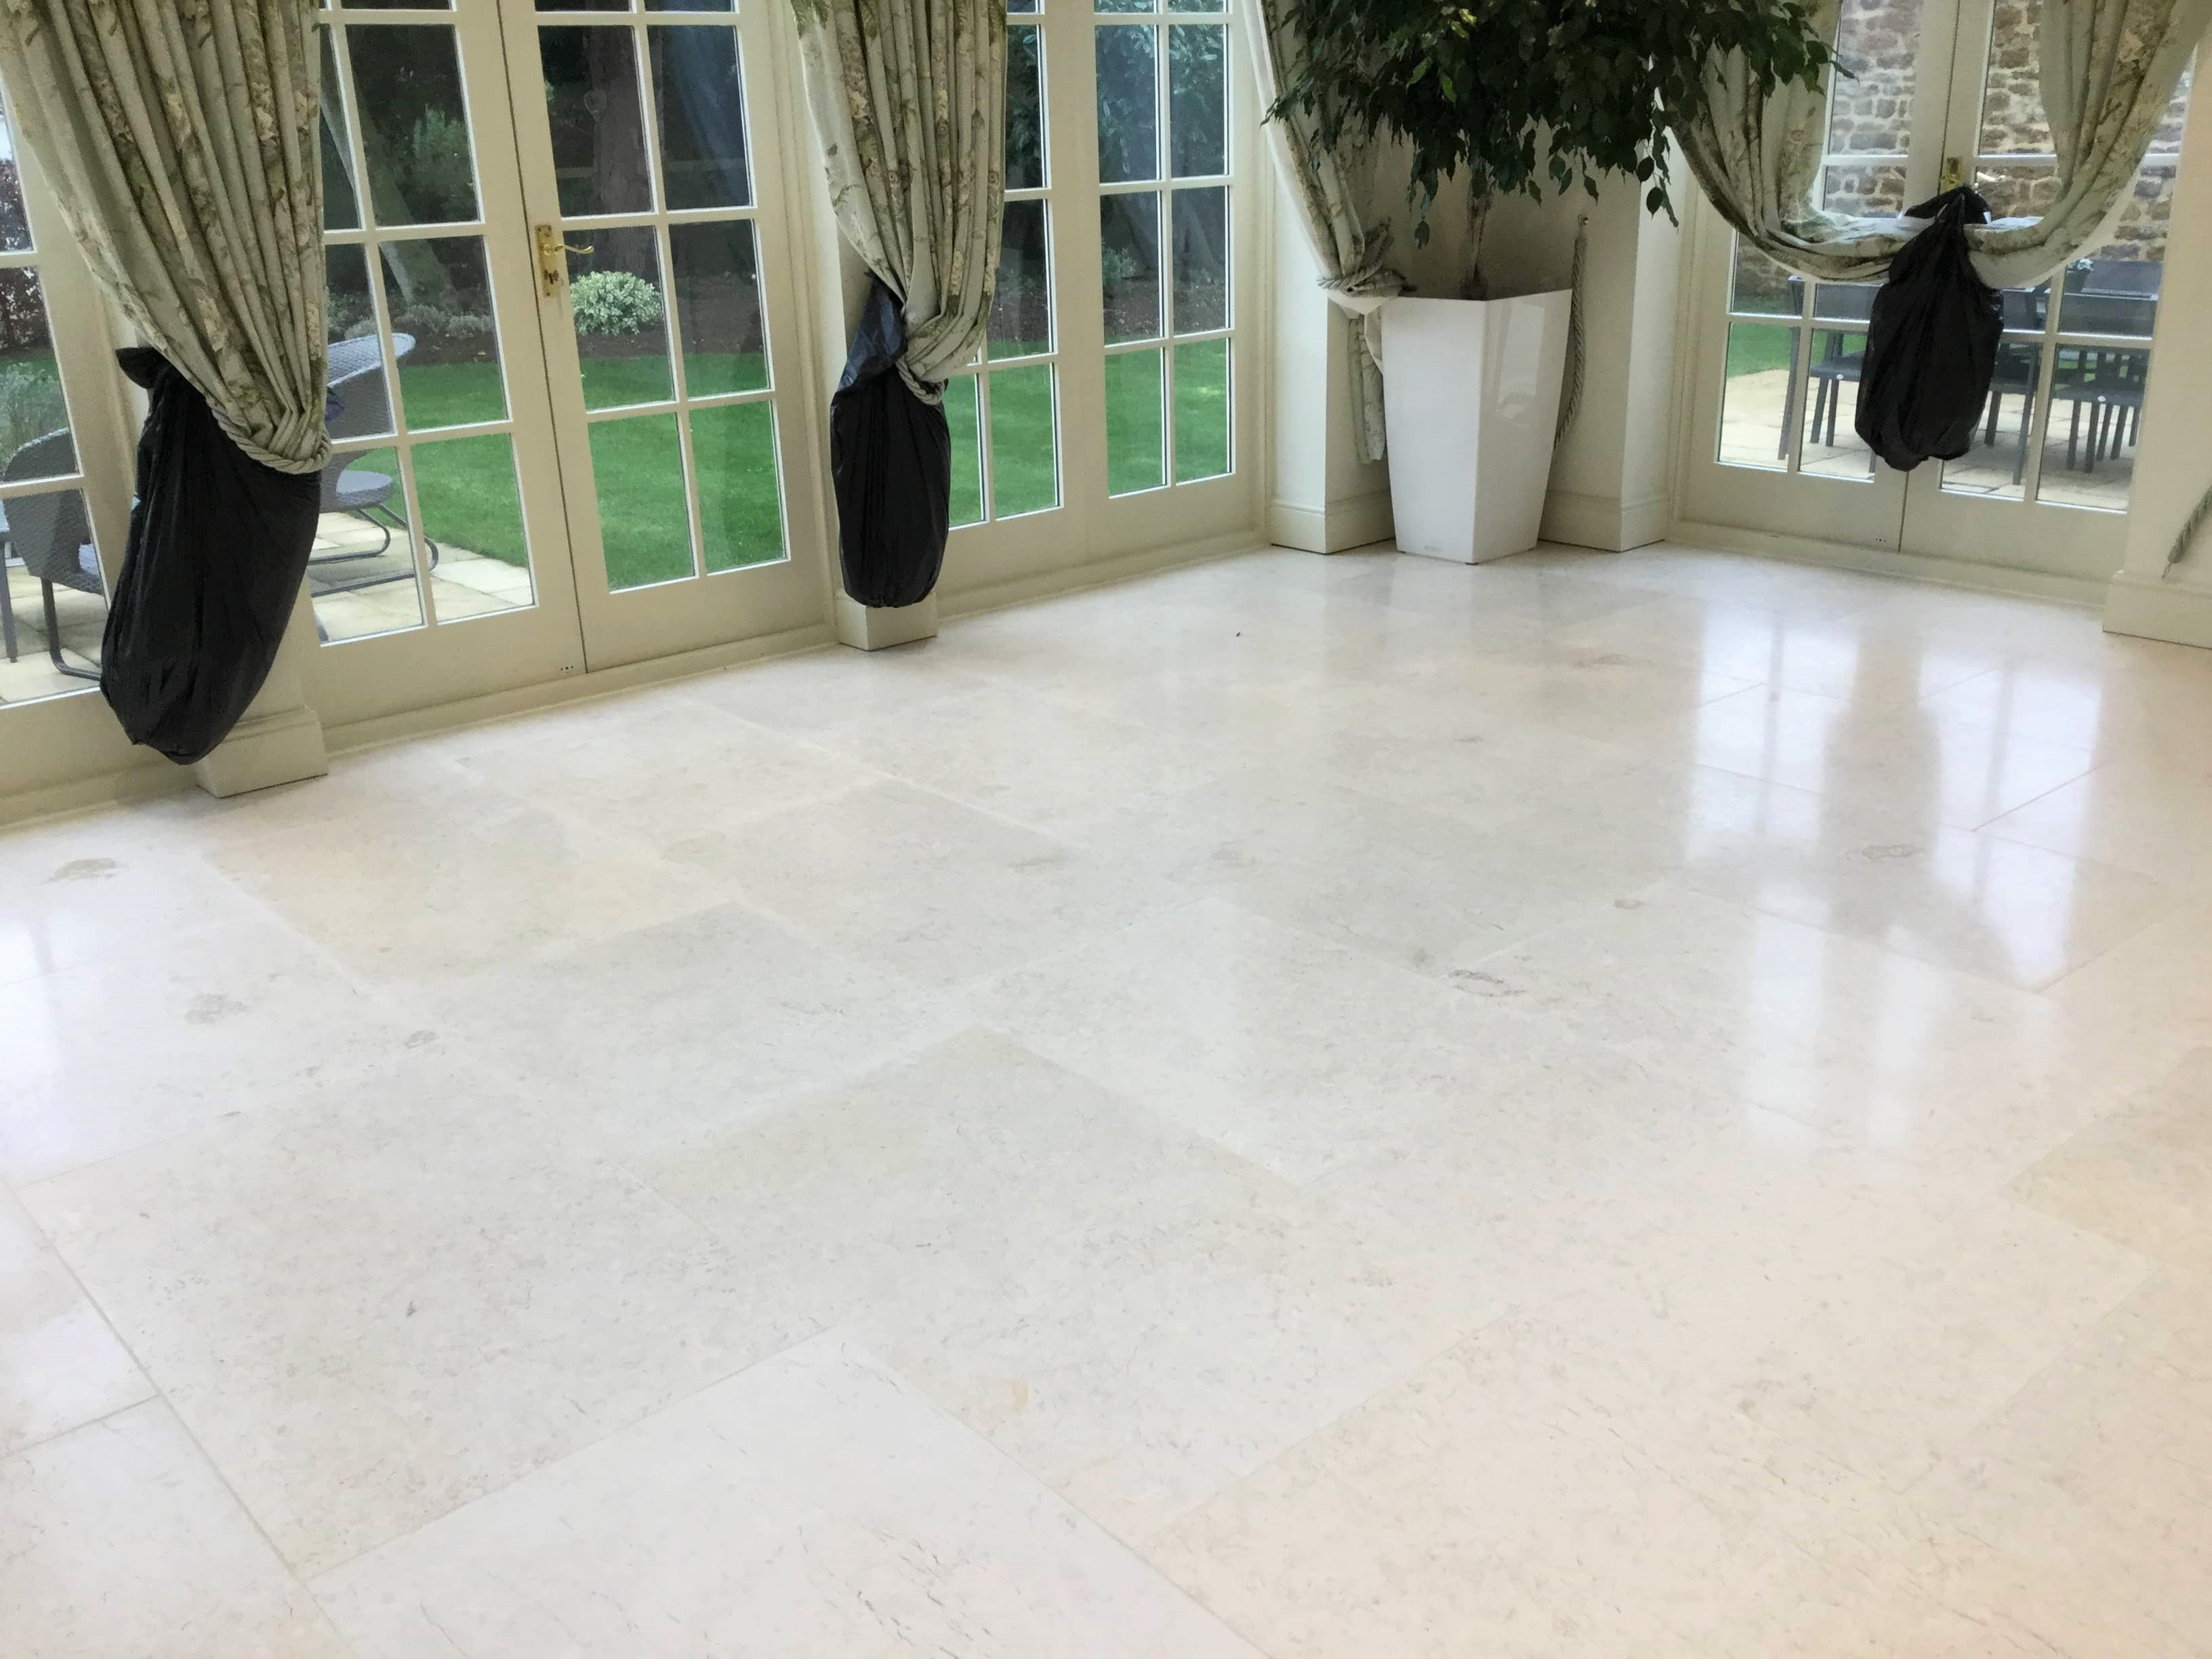 Limestone Tiled Dining Room Floor After Renovation Ecton